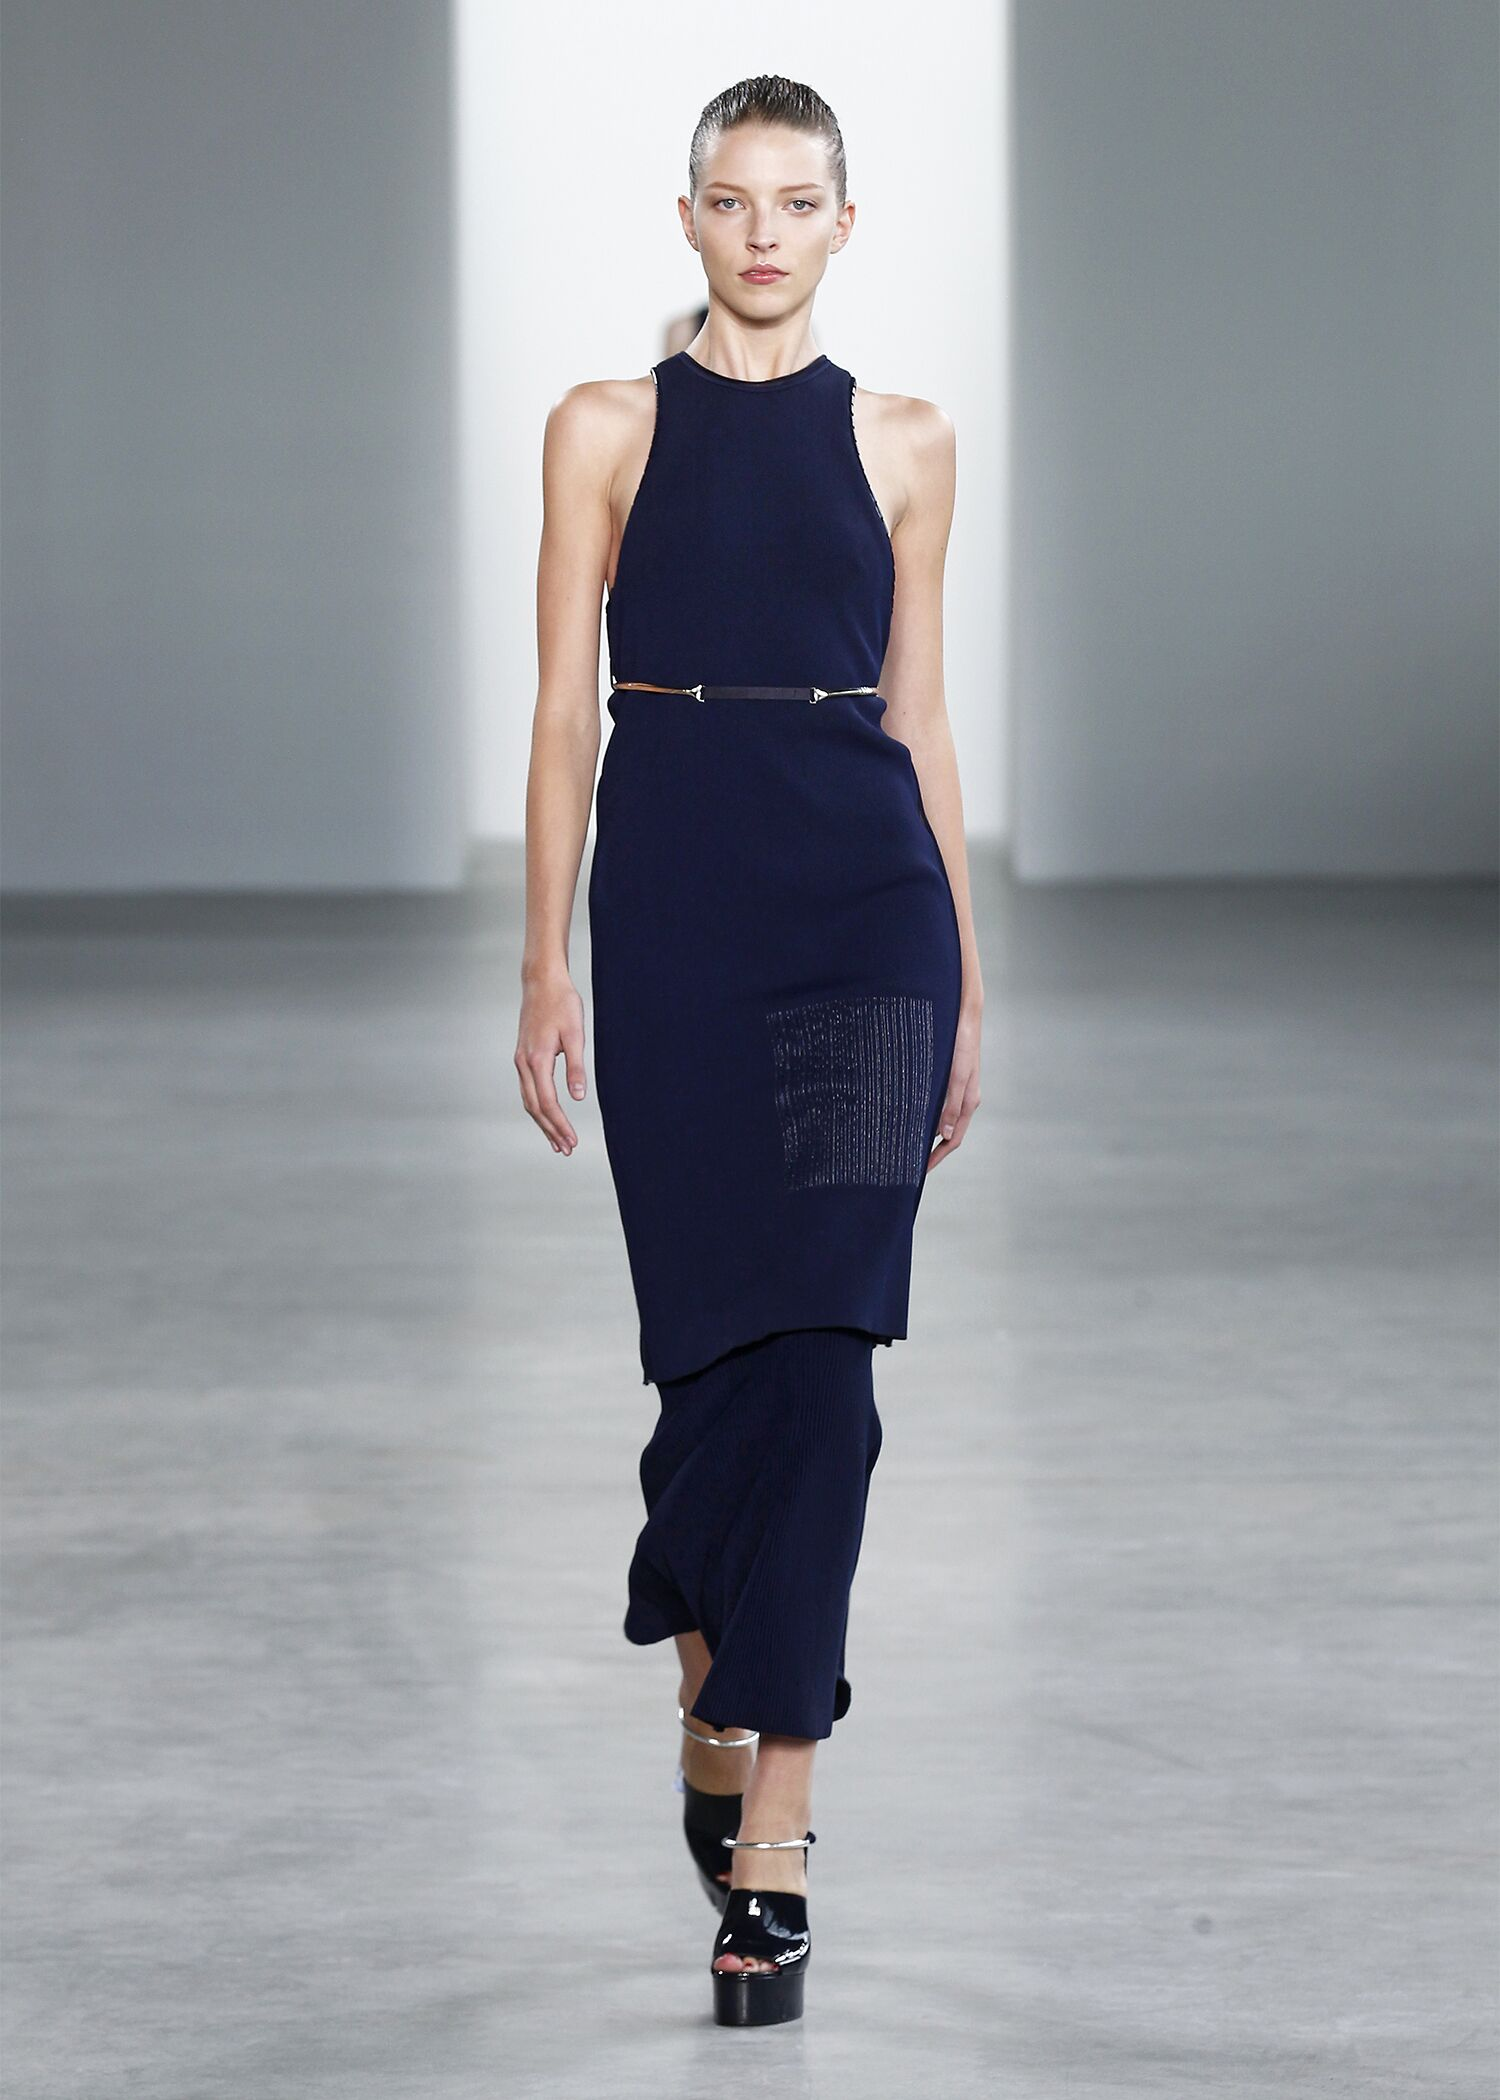 CALVIN KLEIN COLLECTION SPRING 2015 WOMENu0026#39;S COLLECTION | The Skinny Beep